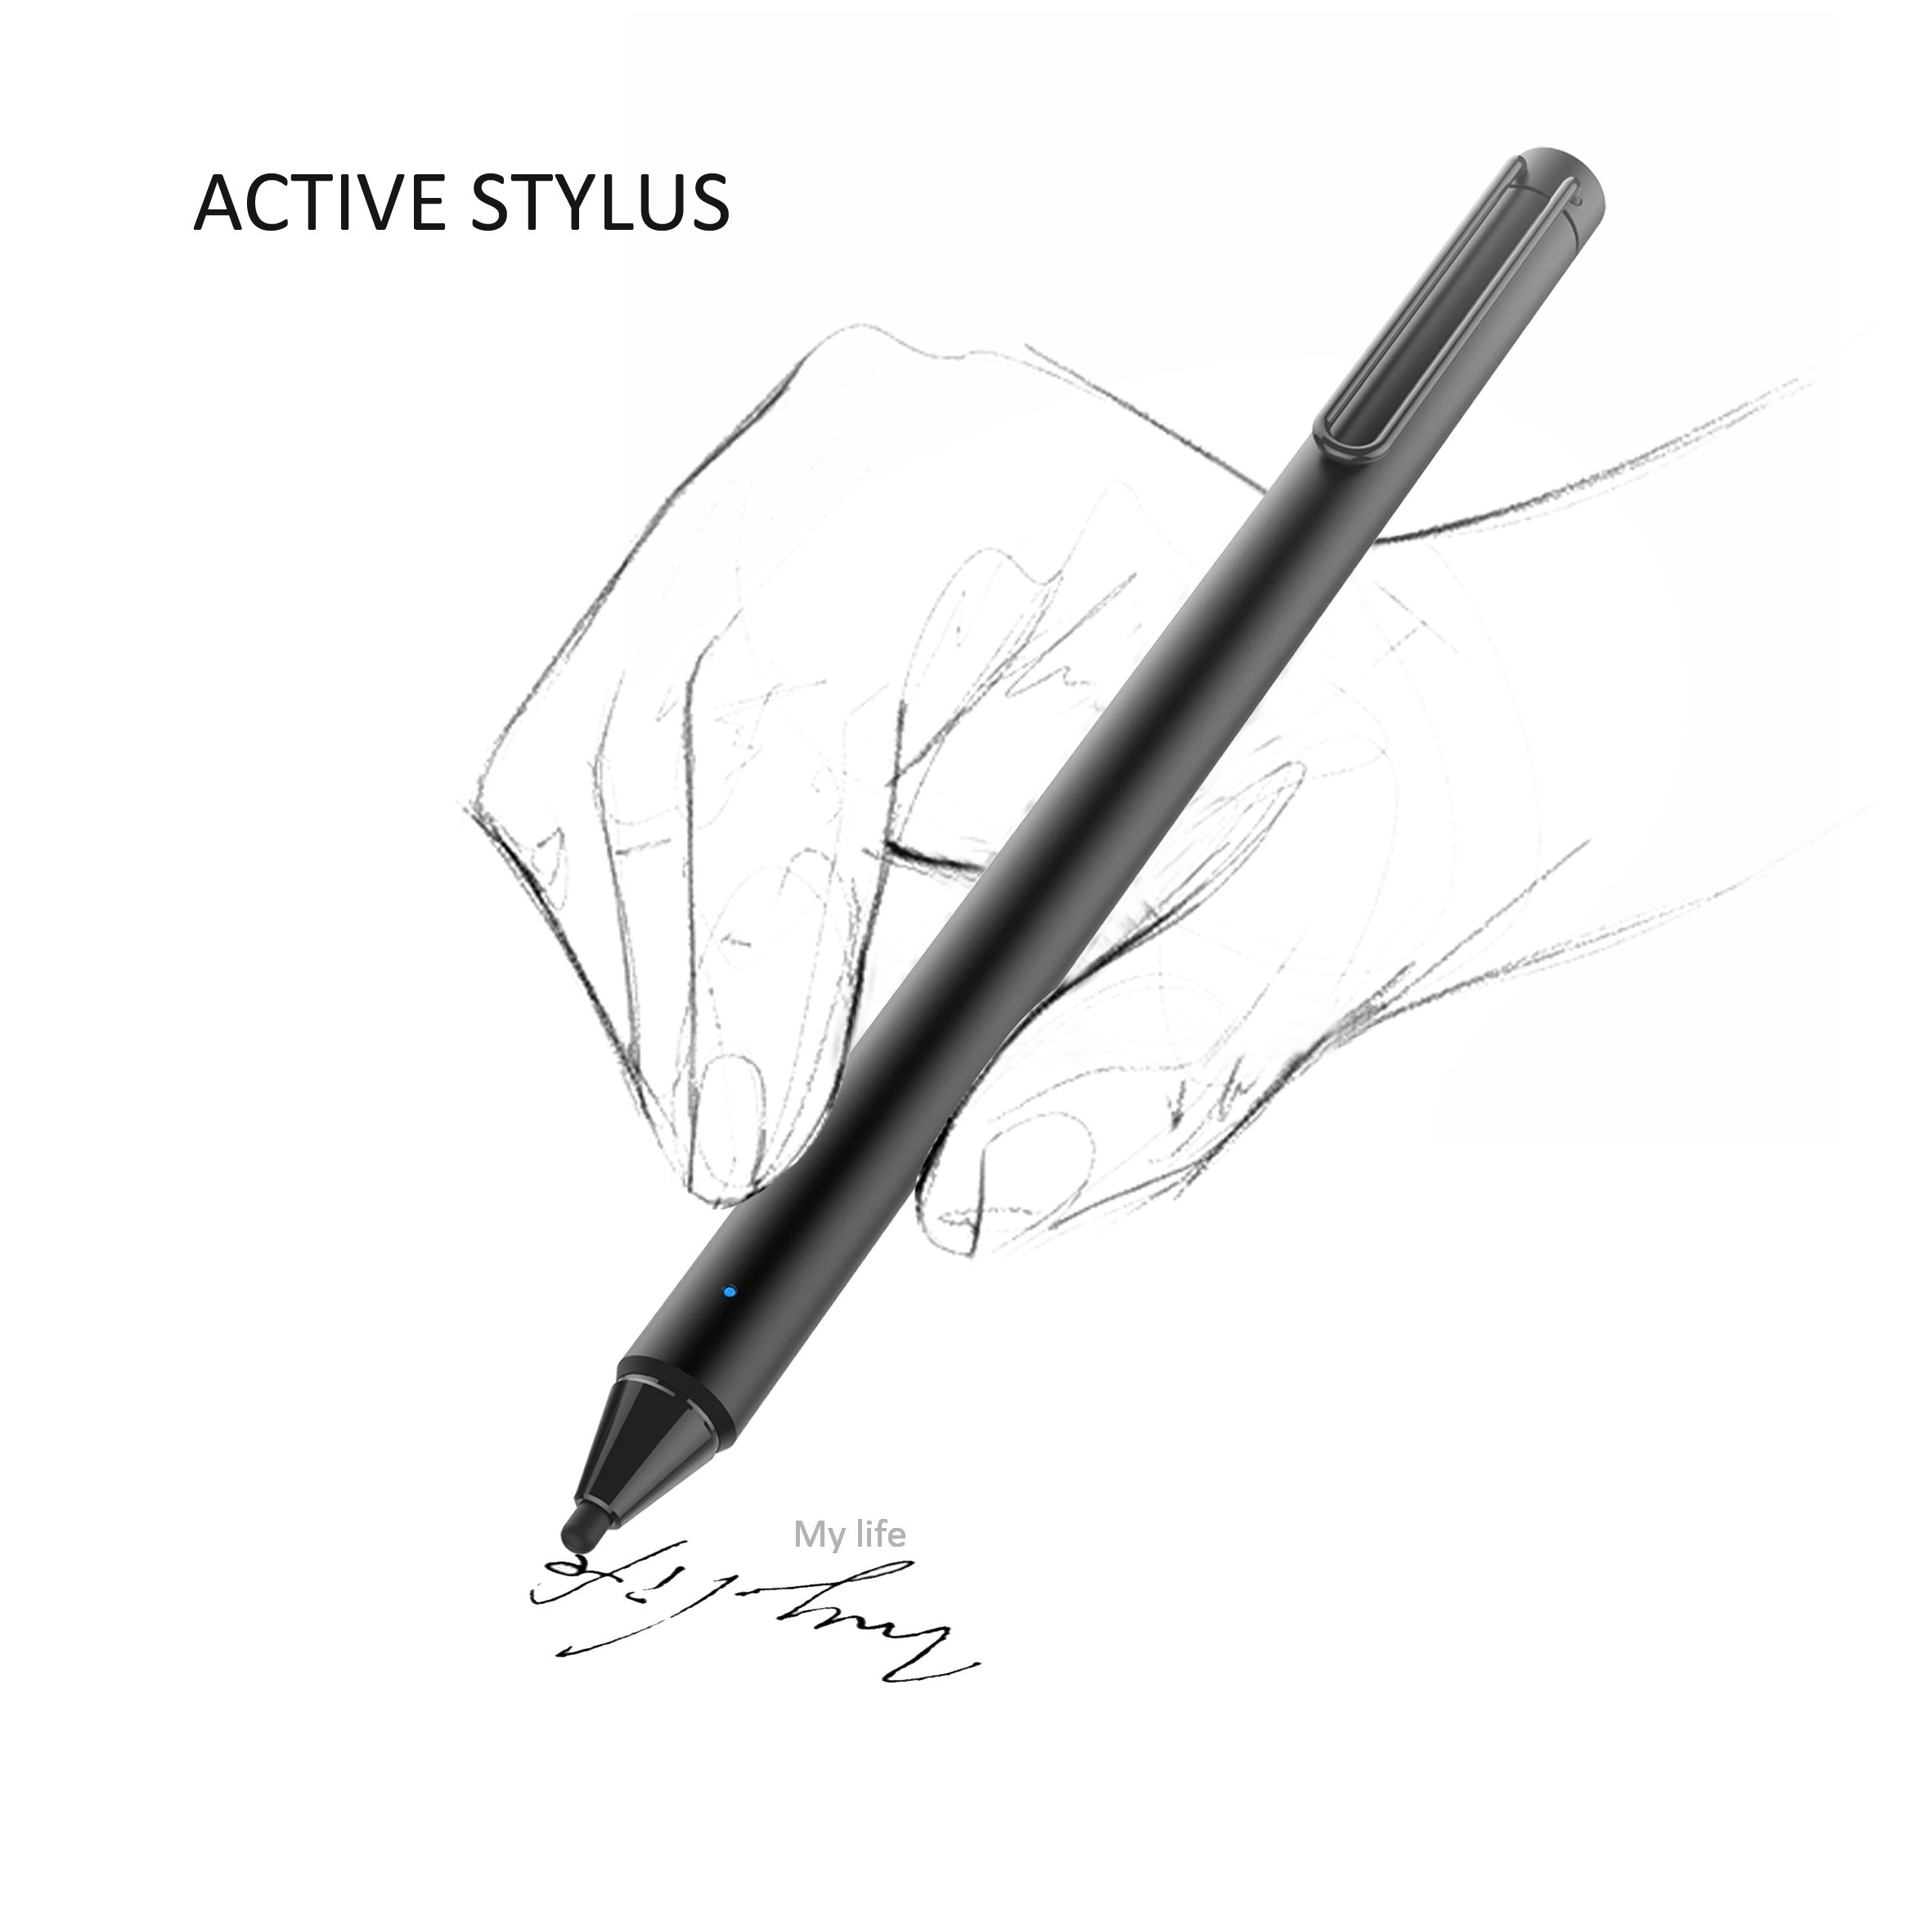 FENTAC Active Stylus Pen 2.4 mm Fine Point Fiber Tip for Touch Screen Devices(Black) by Fentac (Image #8)